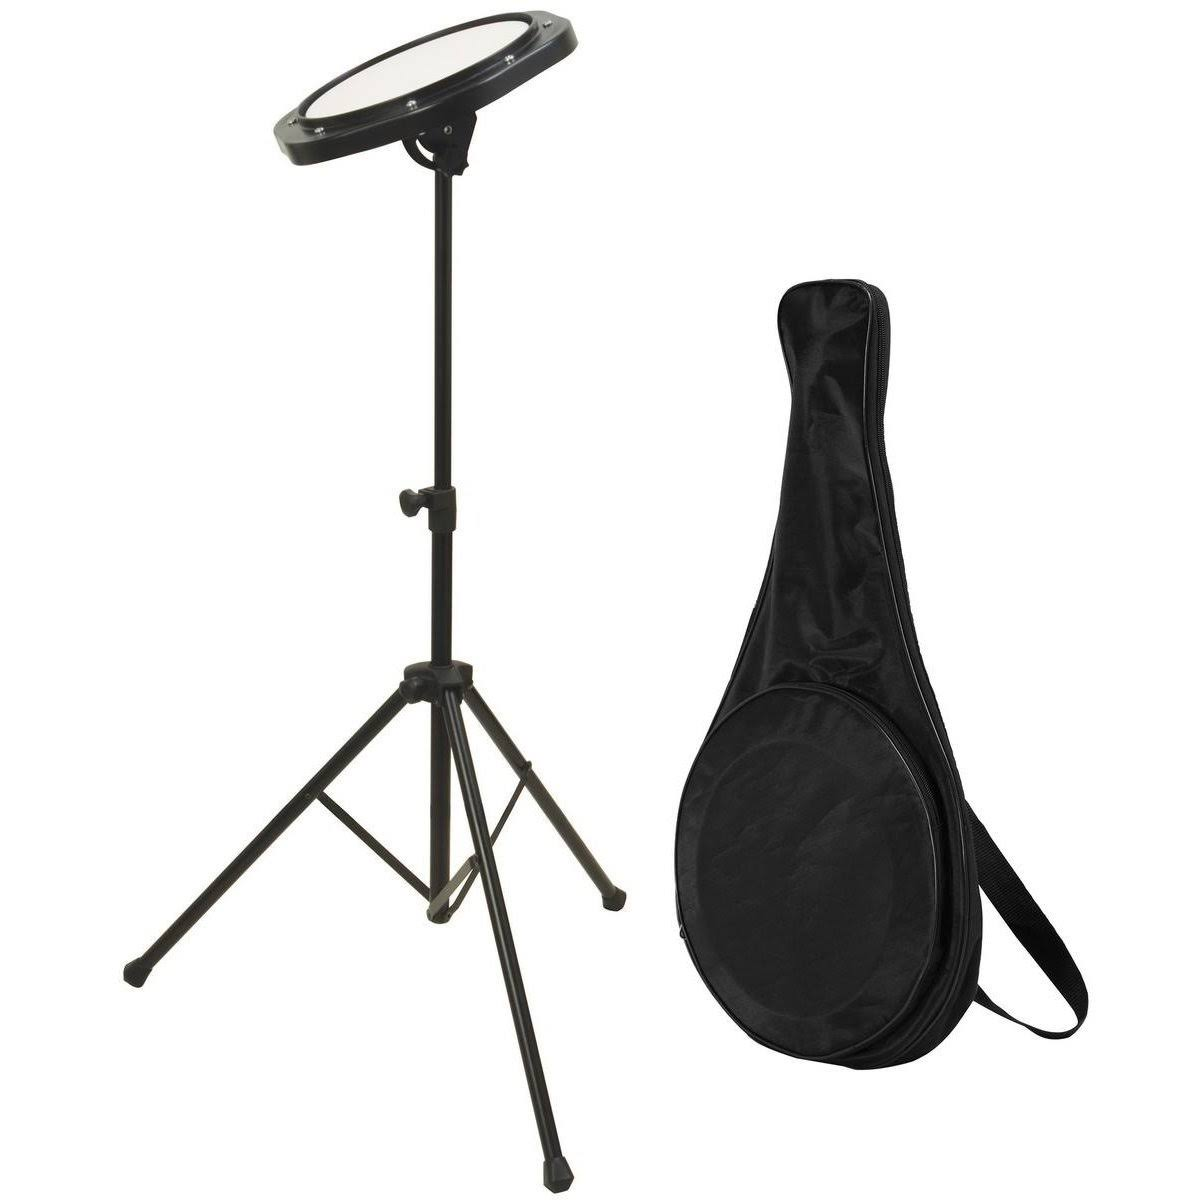 On Stage Drum Practice Pad - with Stand and Bag